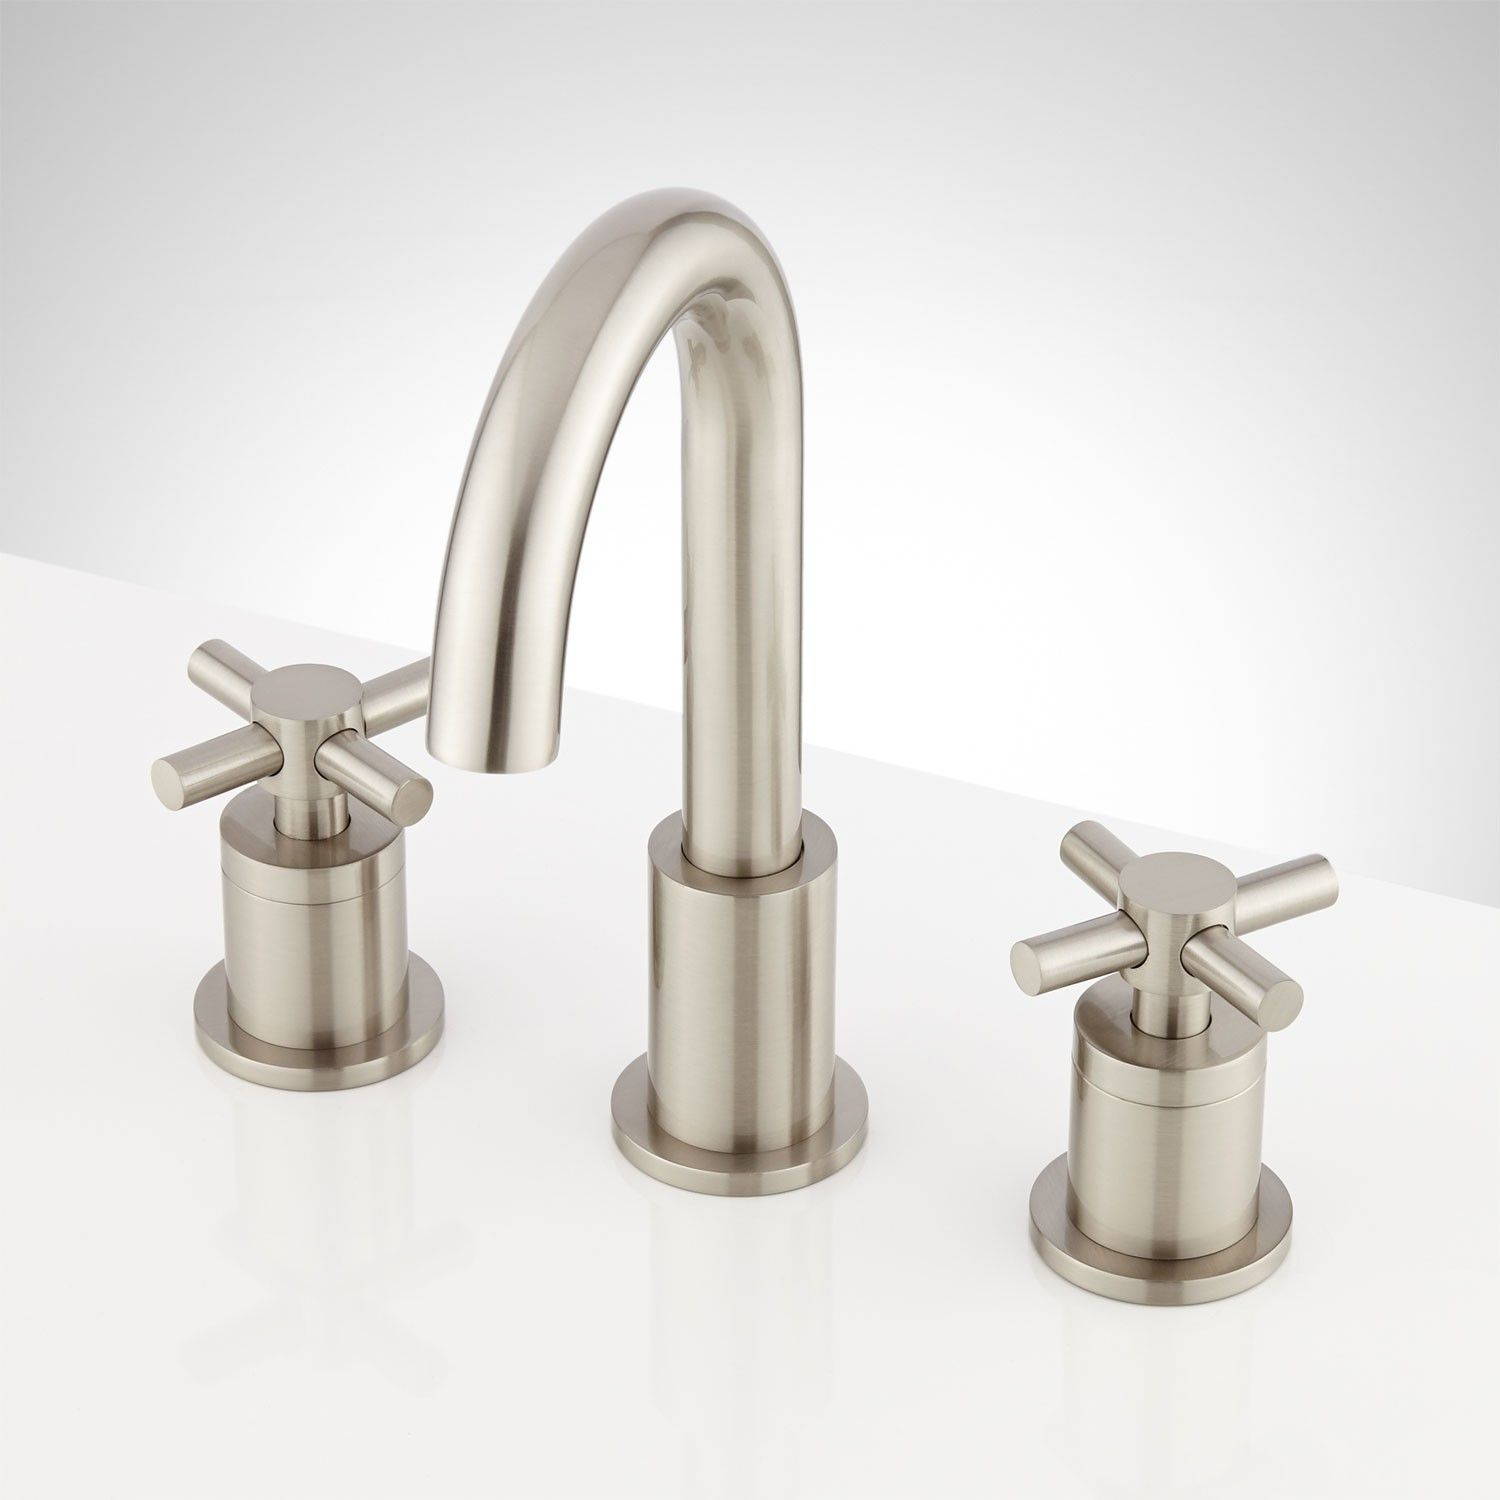 Keating Widespread Bathroom Faucet With Cross Handles Widespread